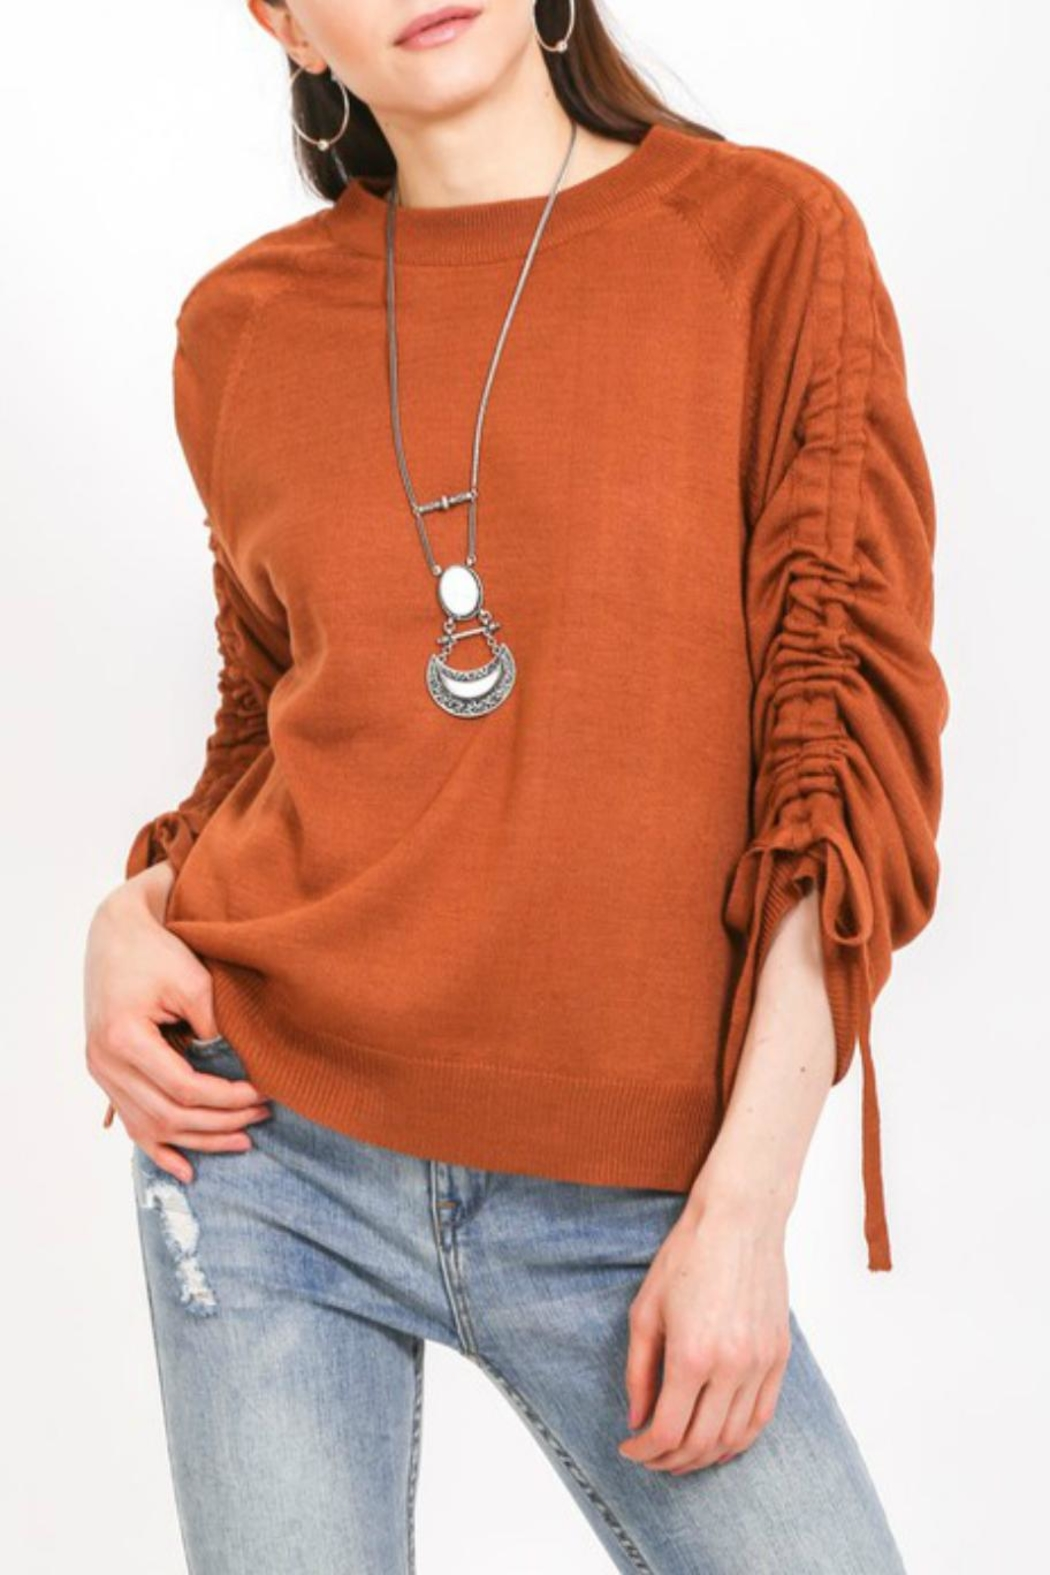 LoveRiche Cinnamon Ruched-Sleeve Sweater - Main Image